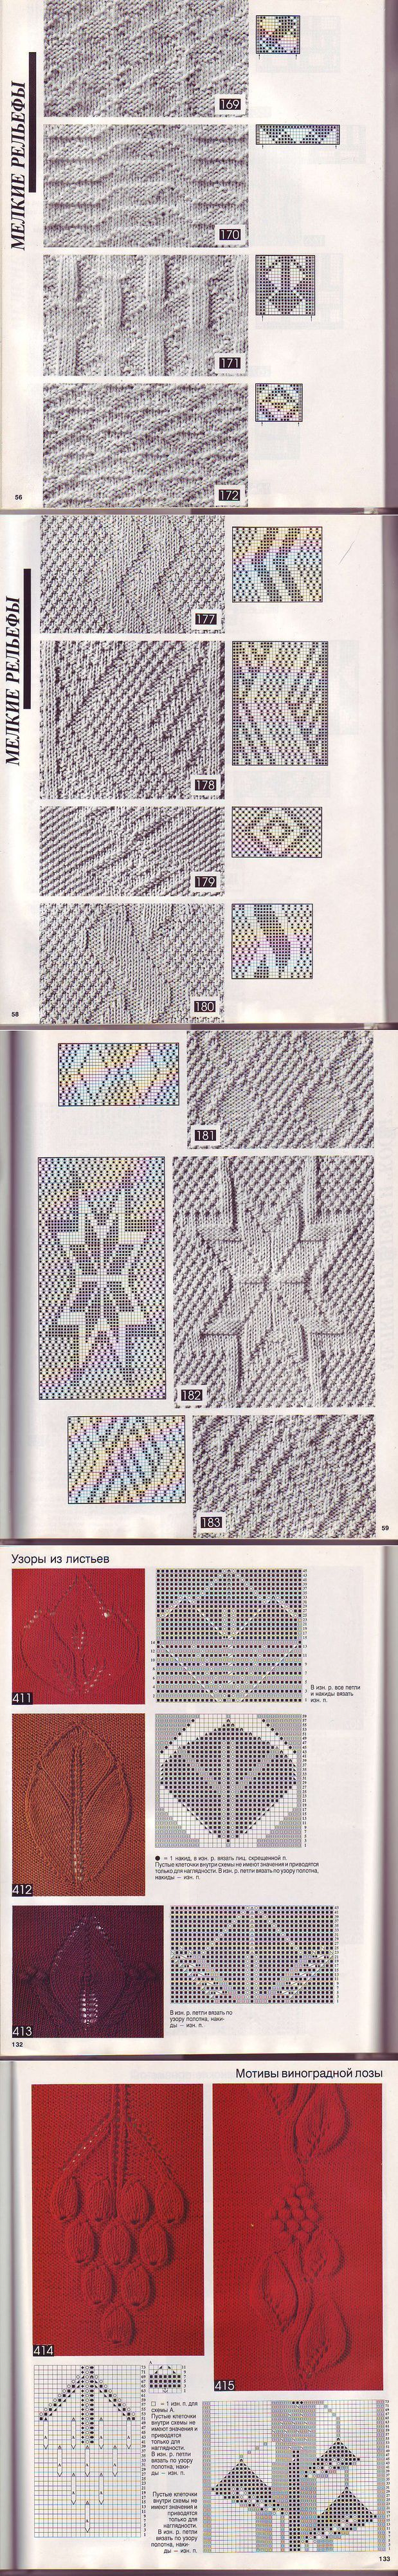 Herringbone Knit Stitch Blanket Pattern : 385 best images about Knitting: Ribbing, Texture, Misc on Pinterest Herring...